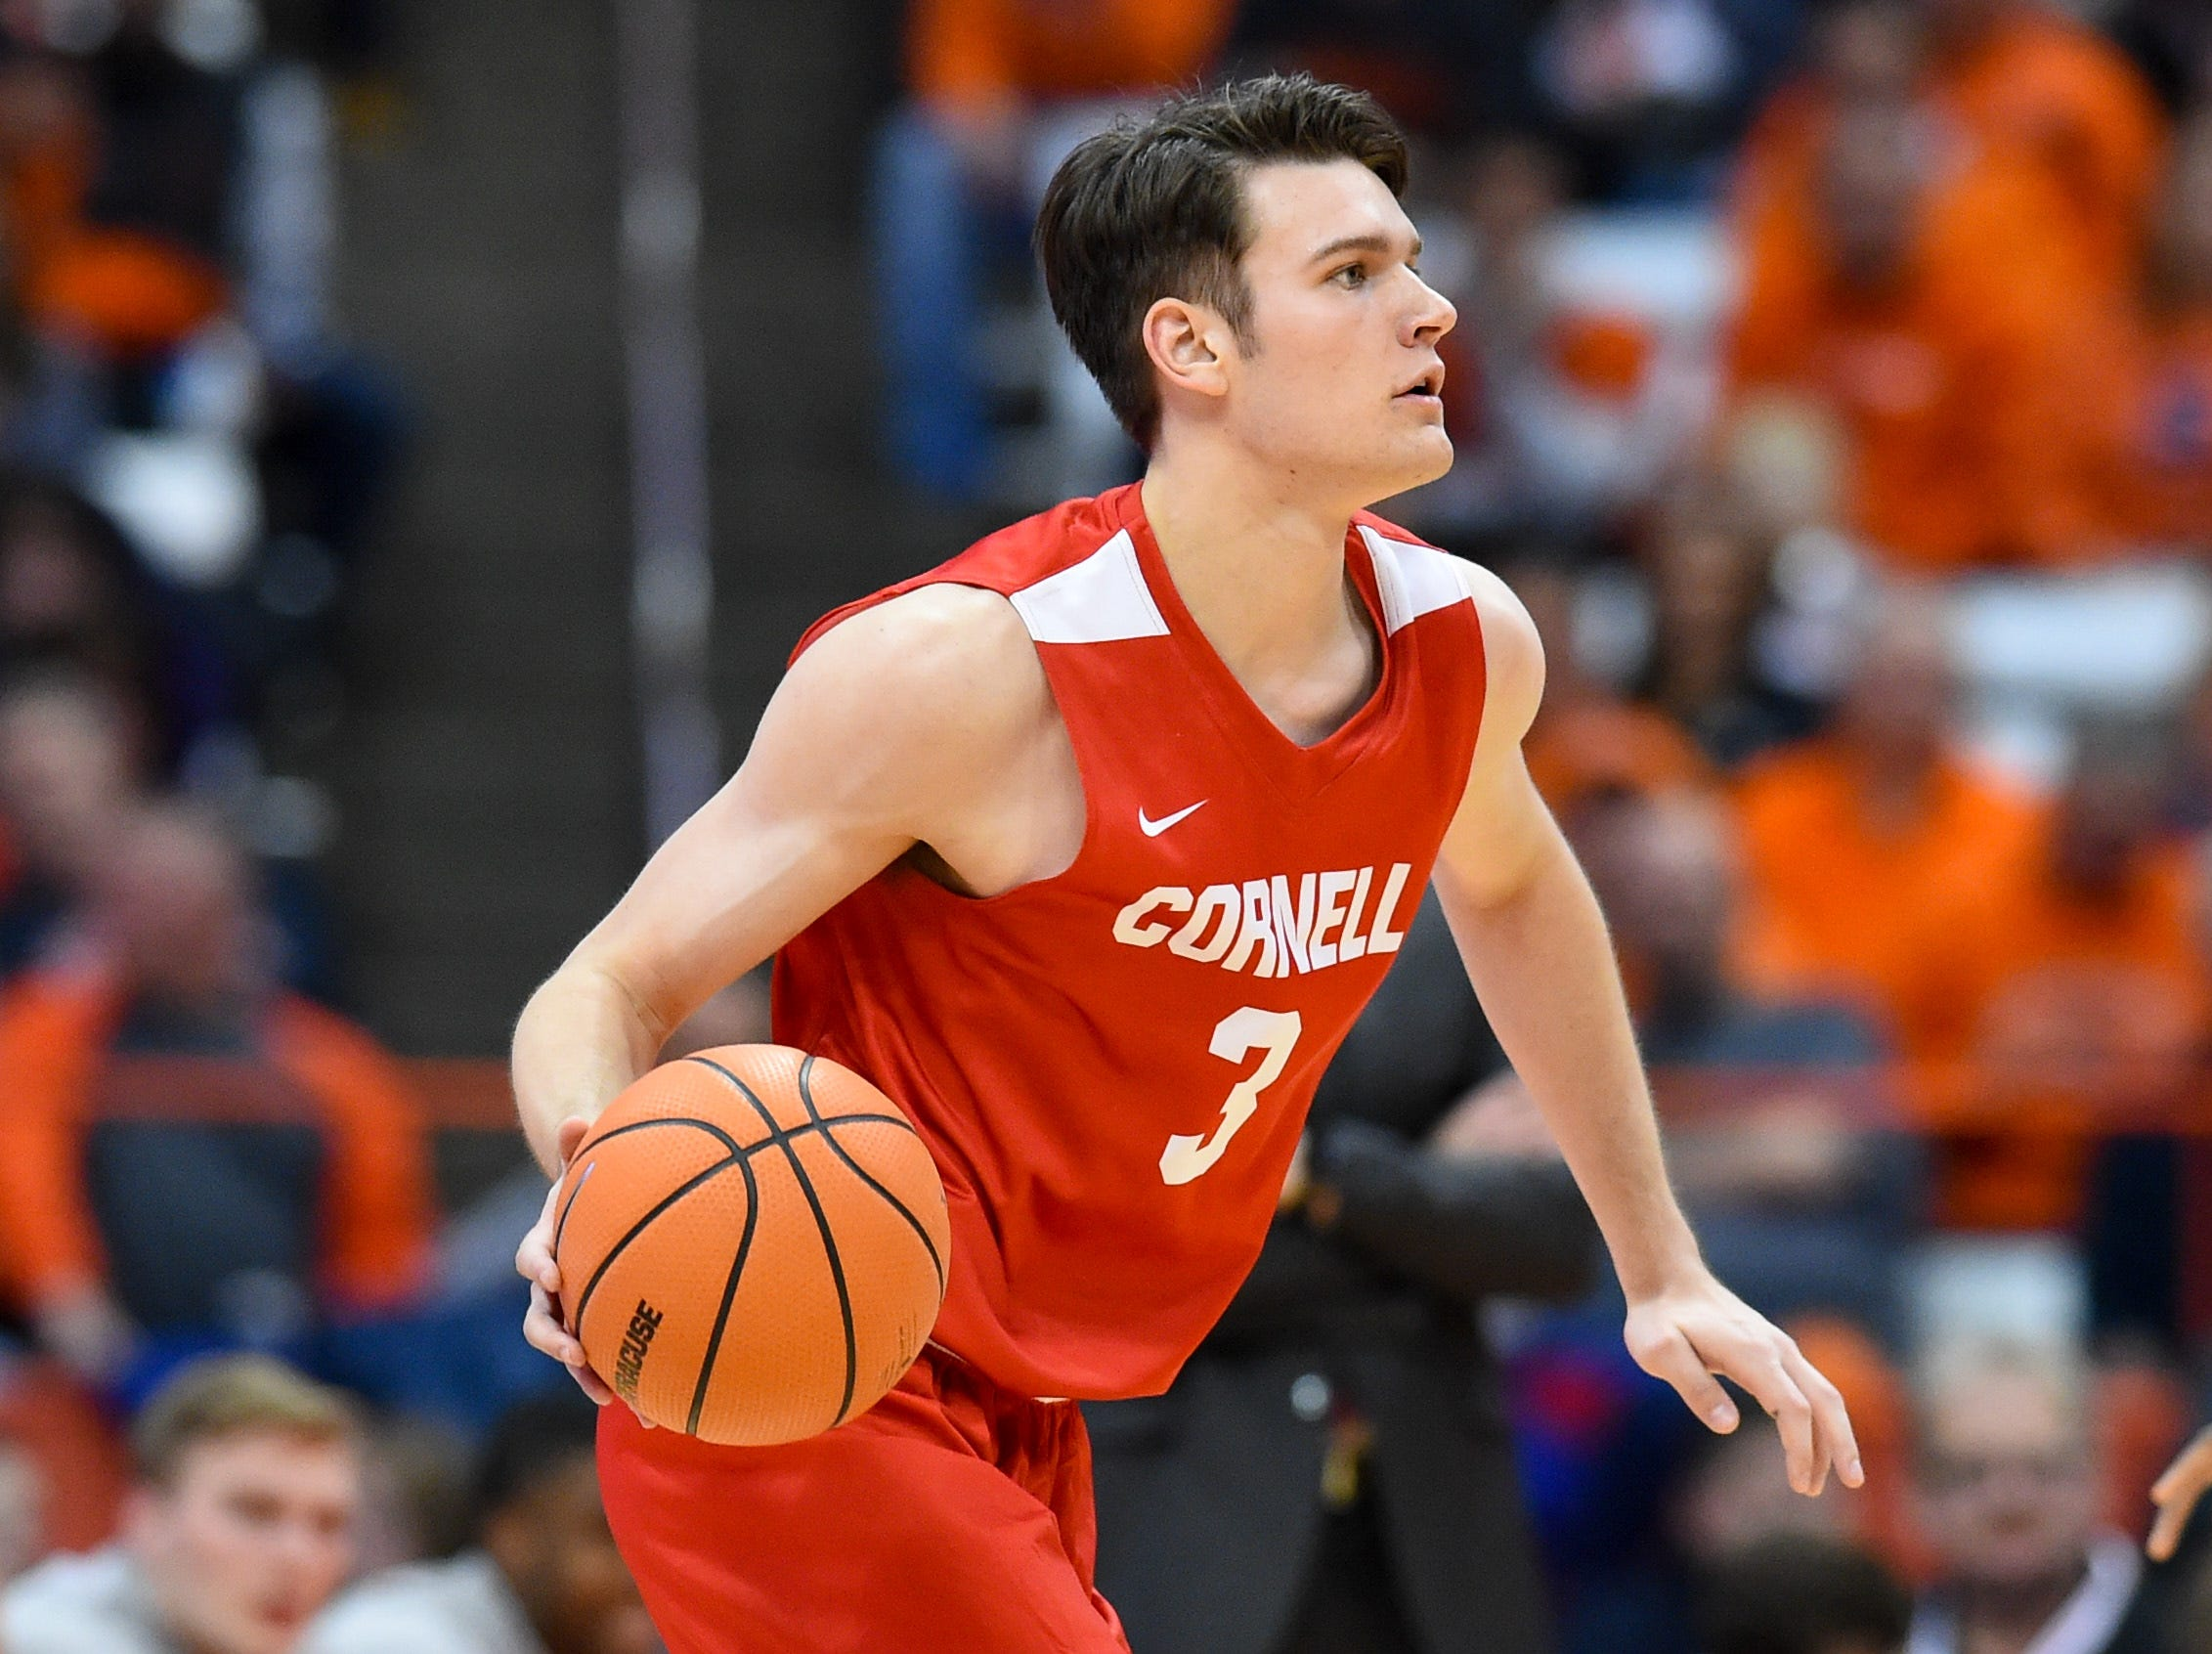 Nov 10, 2017; Syracuse, NY, USA; Cornell Big Red forward Jimmy Boeheim (3) controls the ball against the Syracuse Orange during the second half at the Carrier Dome. Mandatory Credit: Rich Barnes-USA TODAY Sports